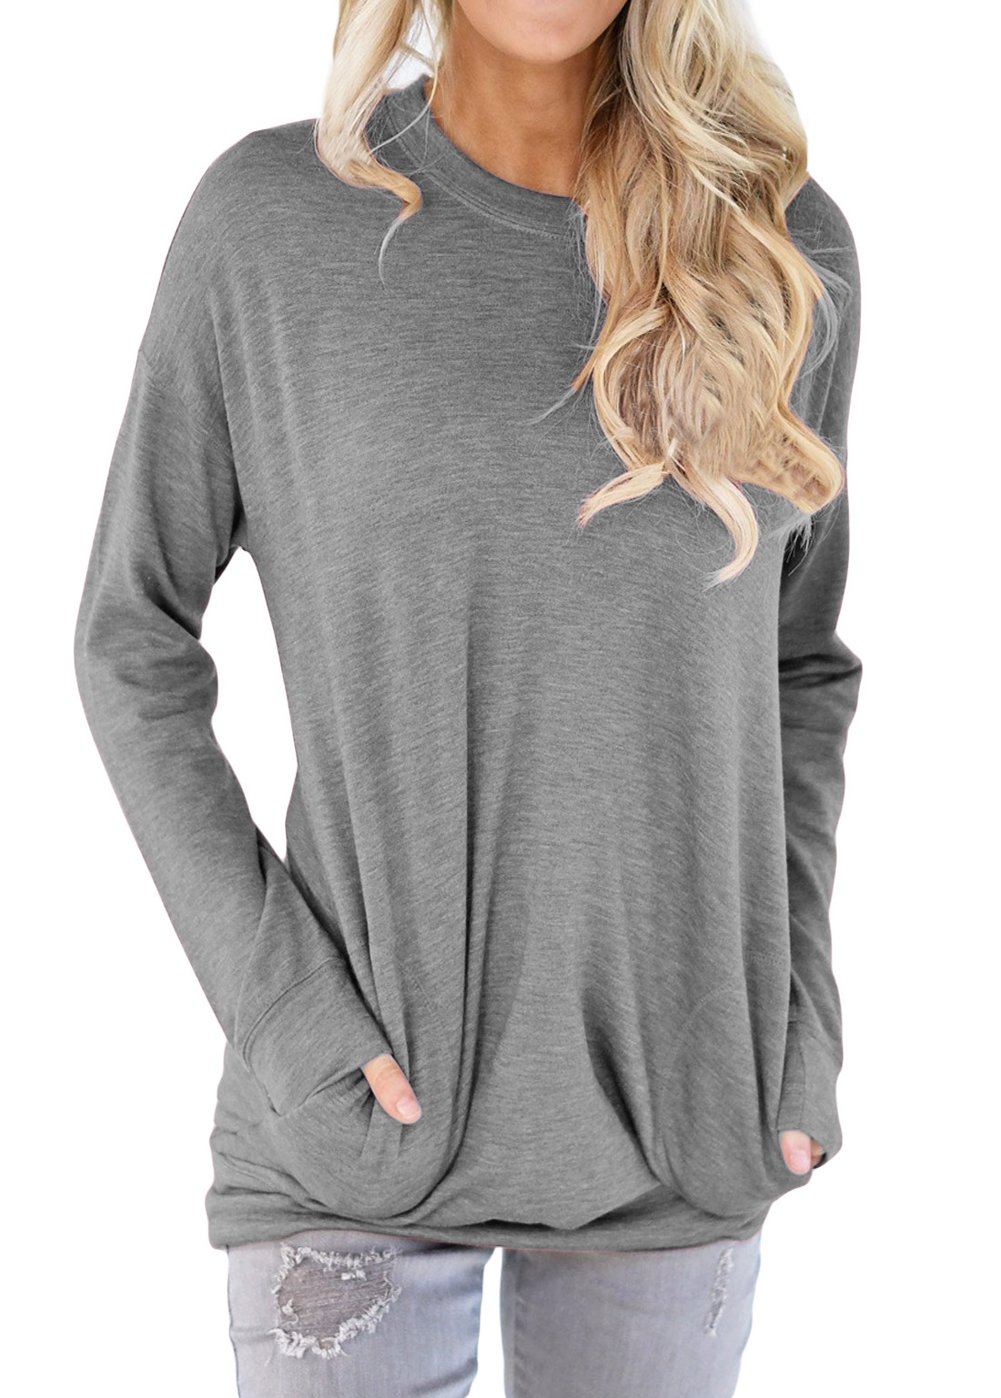 Shawhuwa Womens Long Sleeve Sweatshirt Loose T-Shirt Blouses Tops M Gray